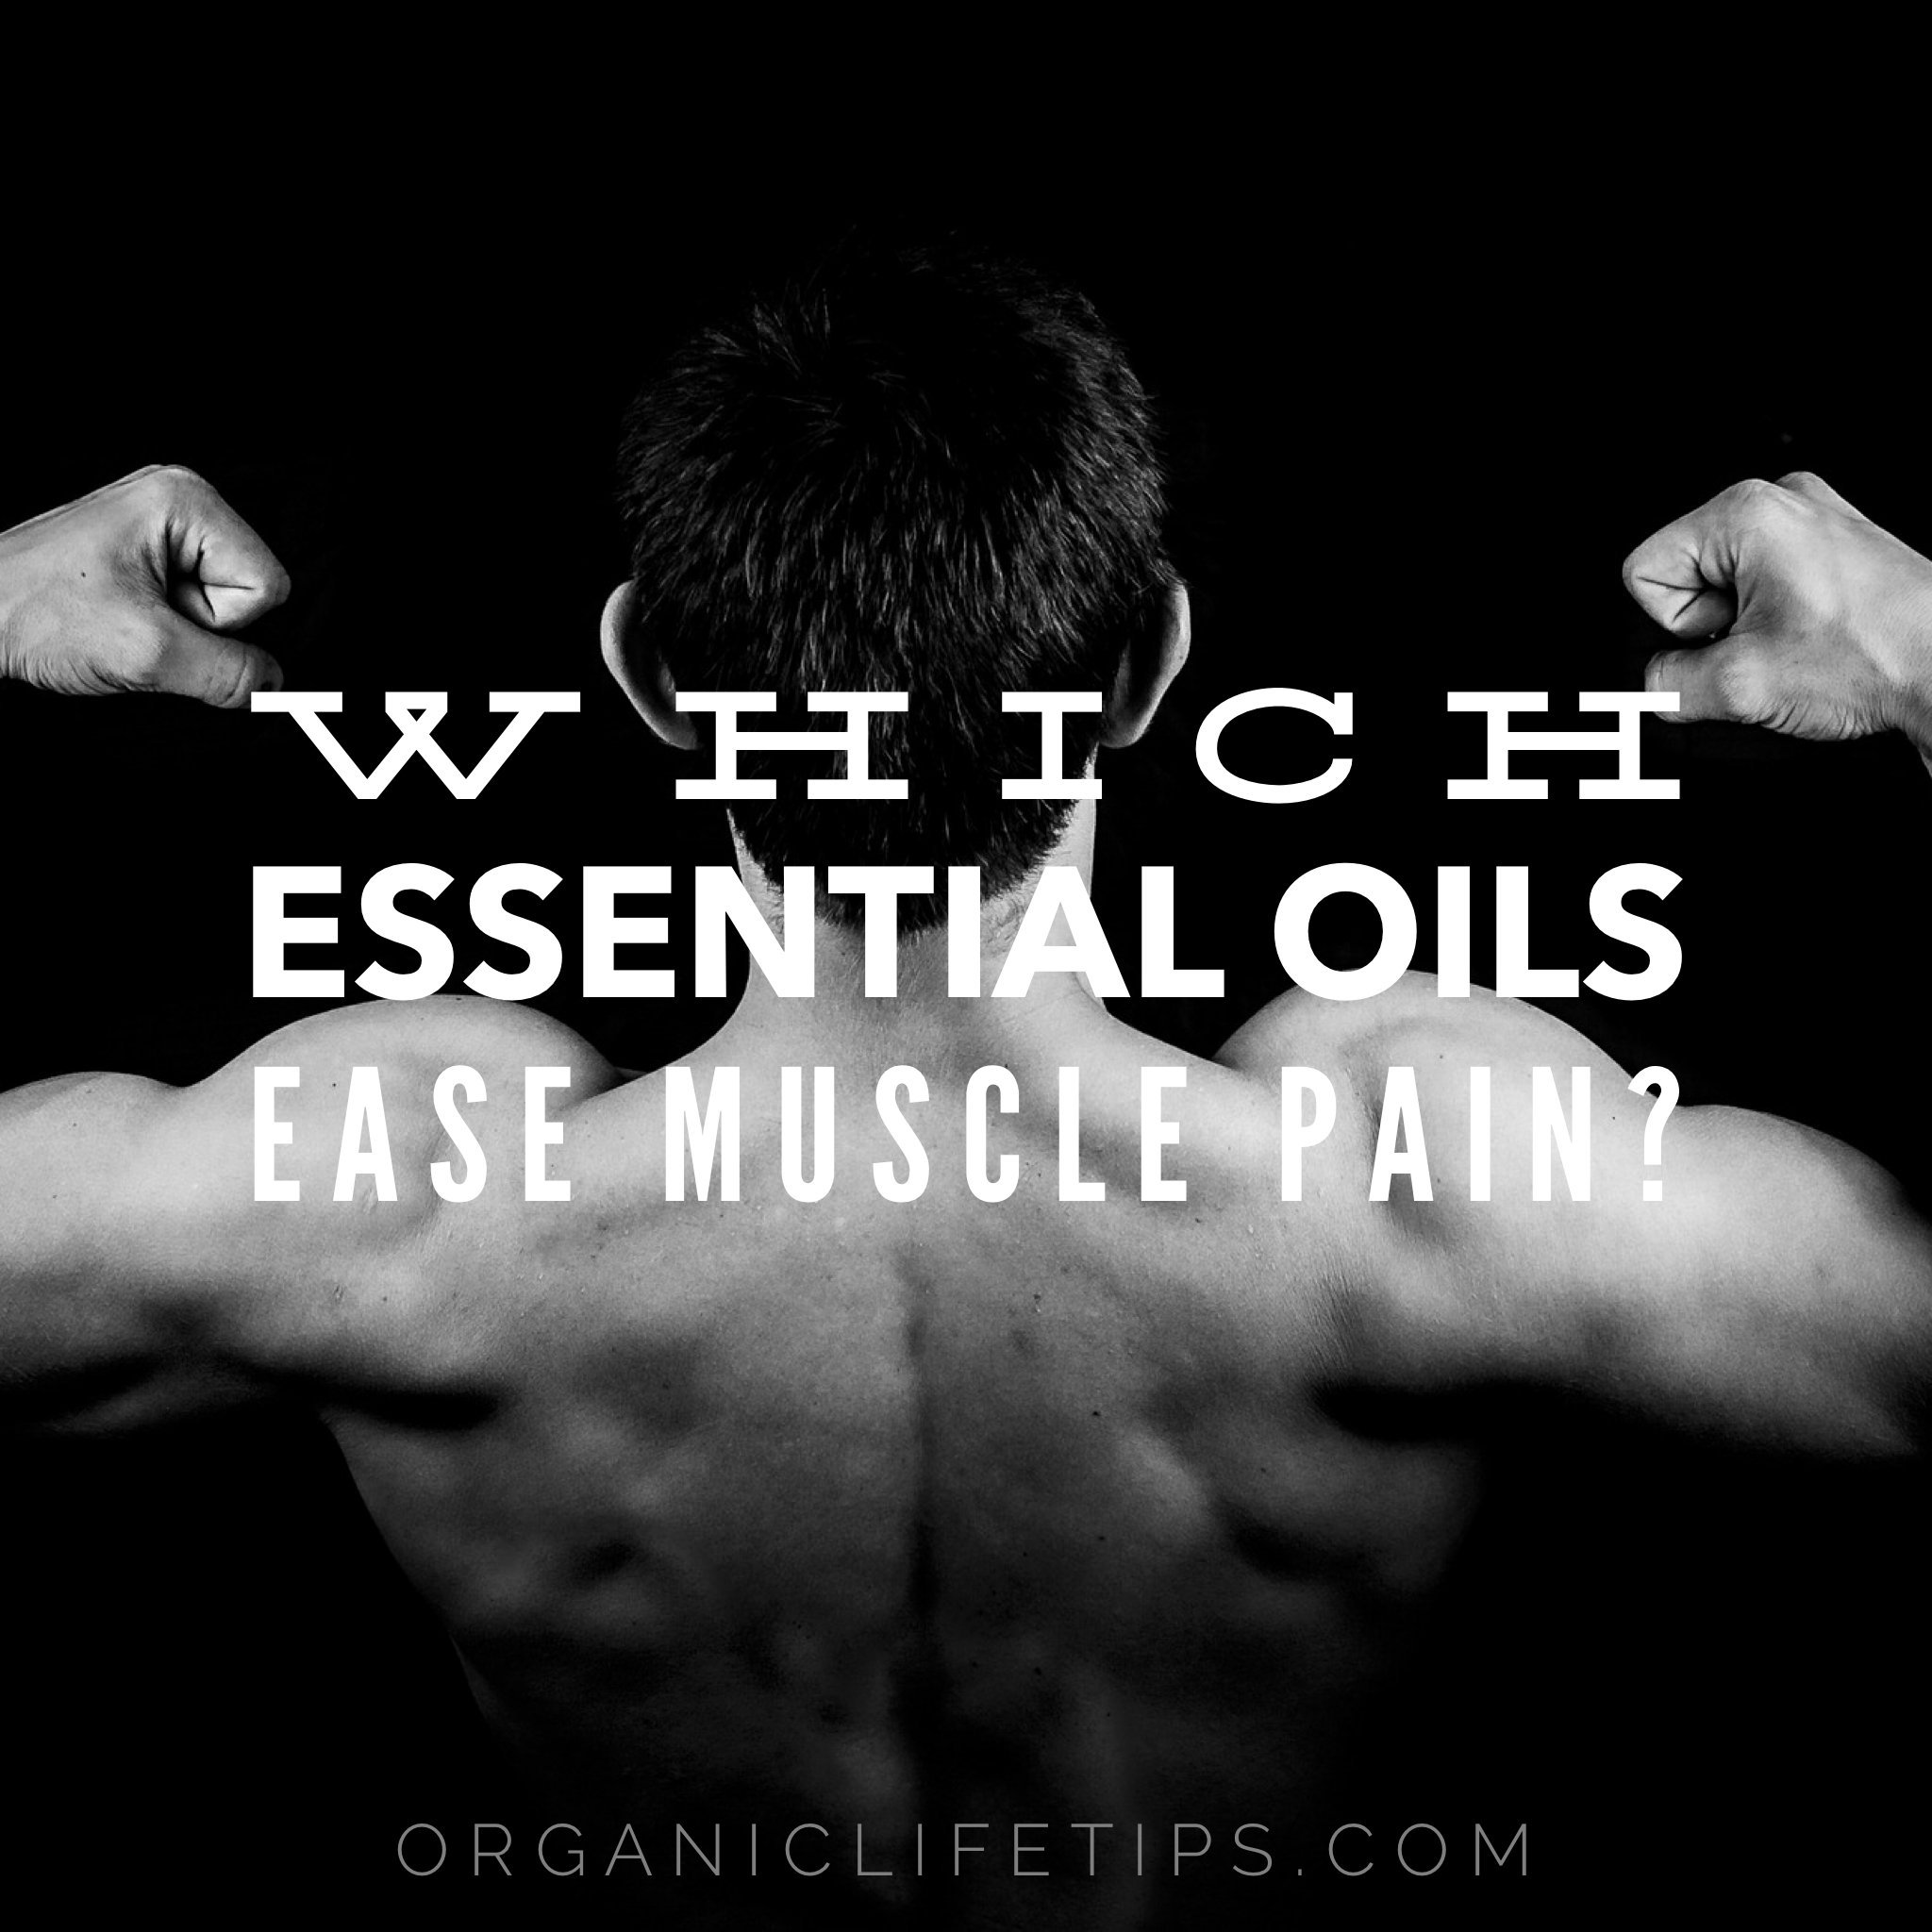 Eseential Oils For Muscle Pain